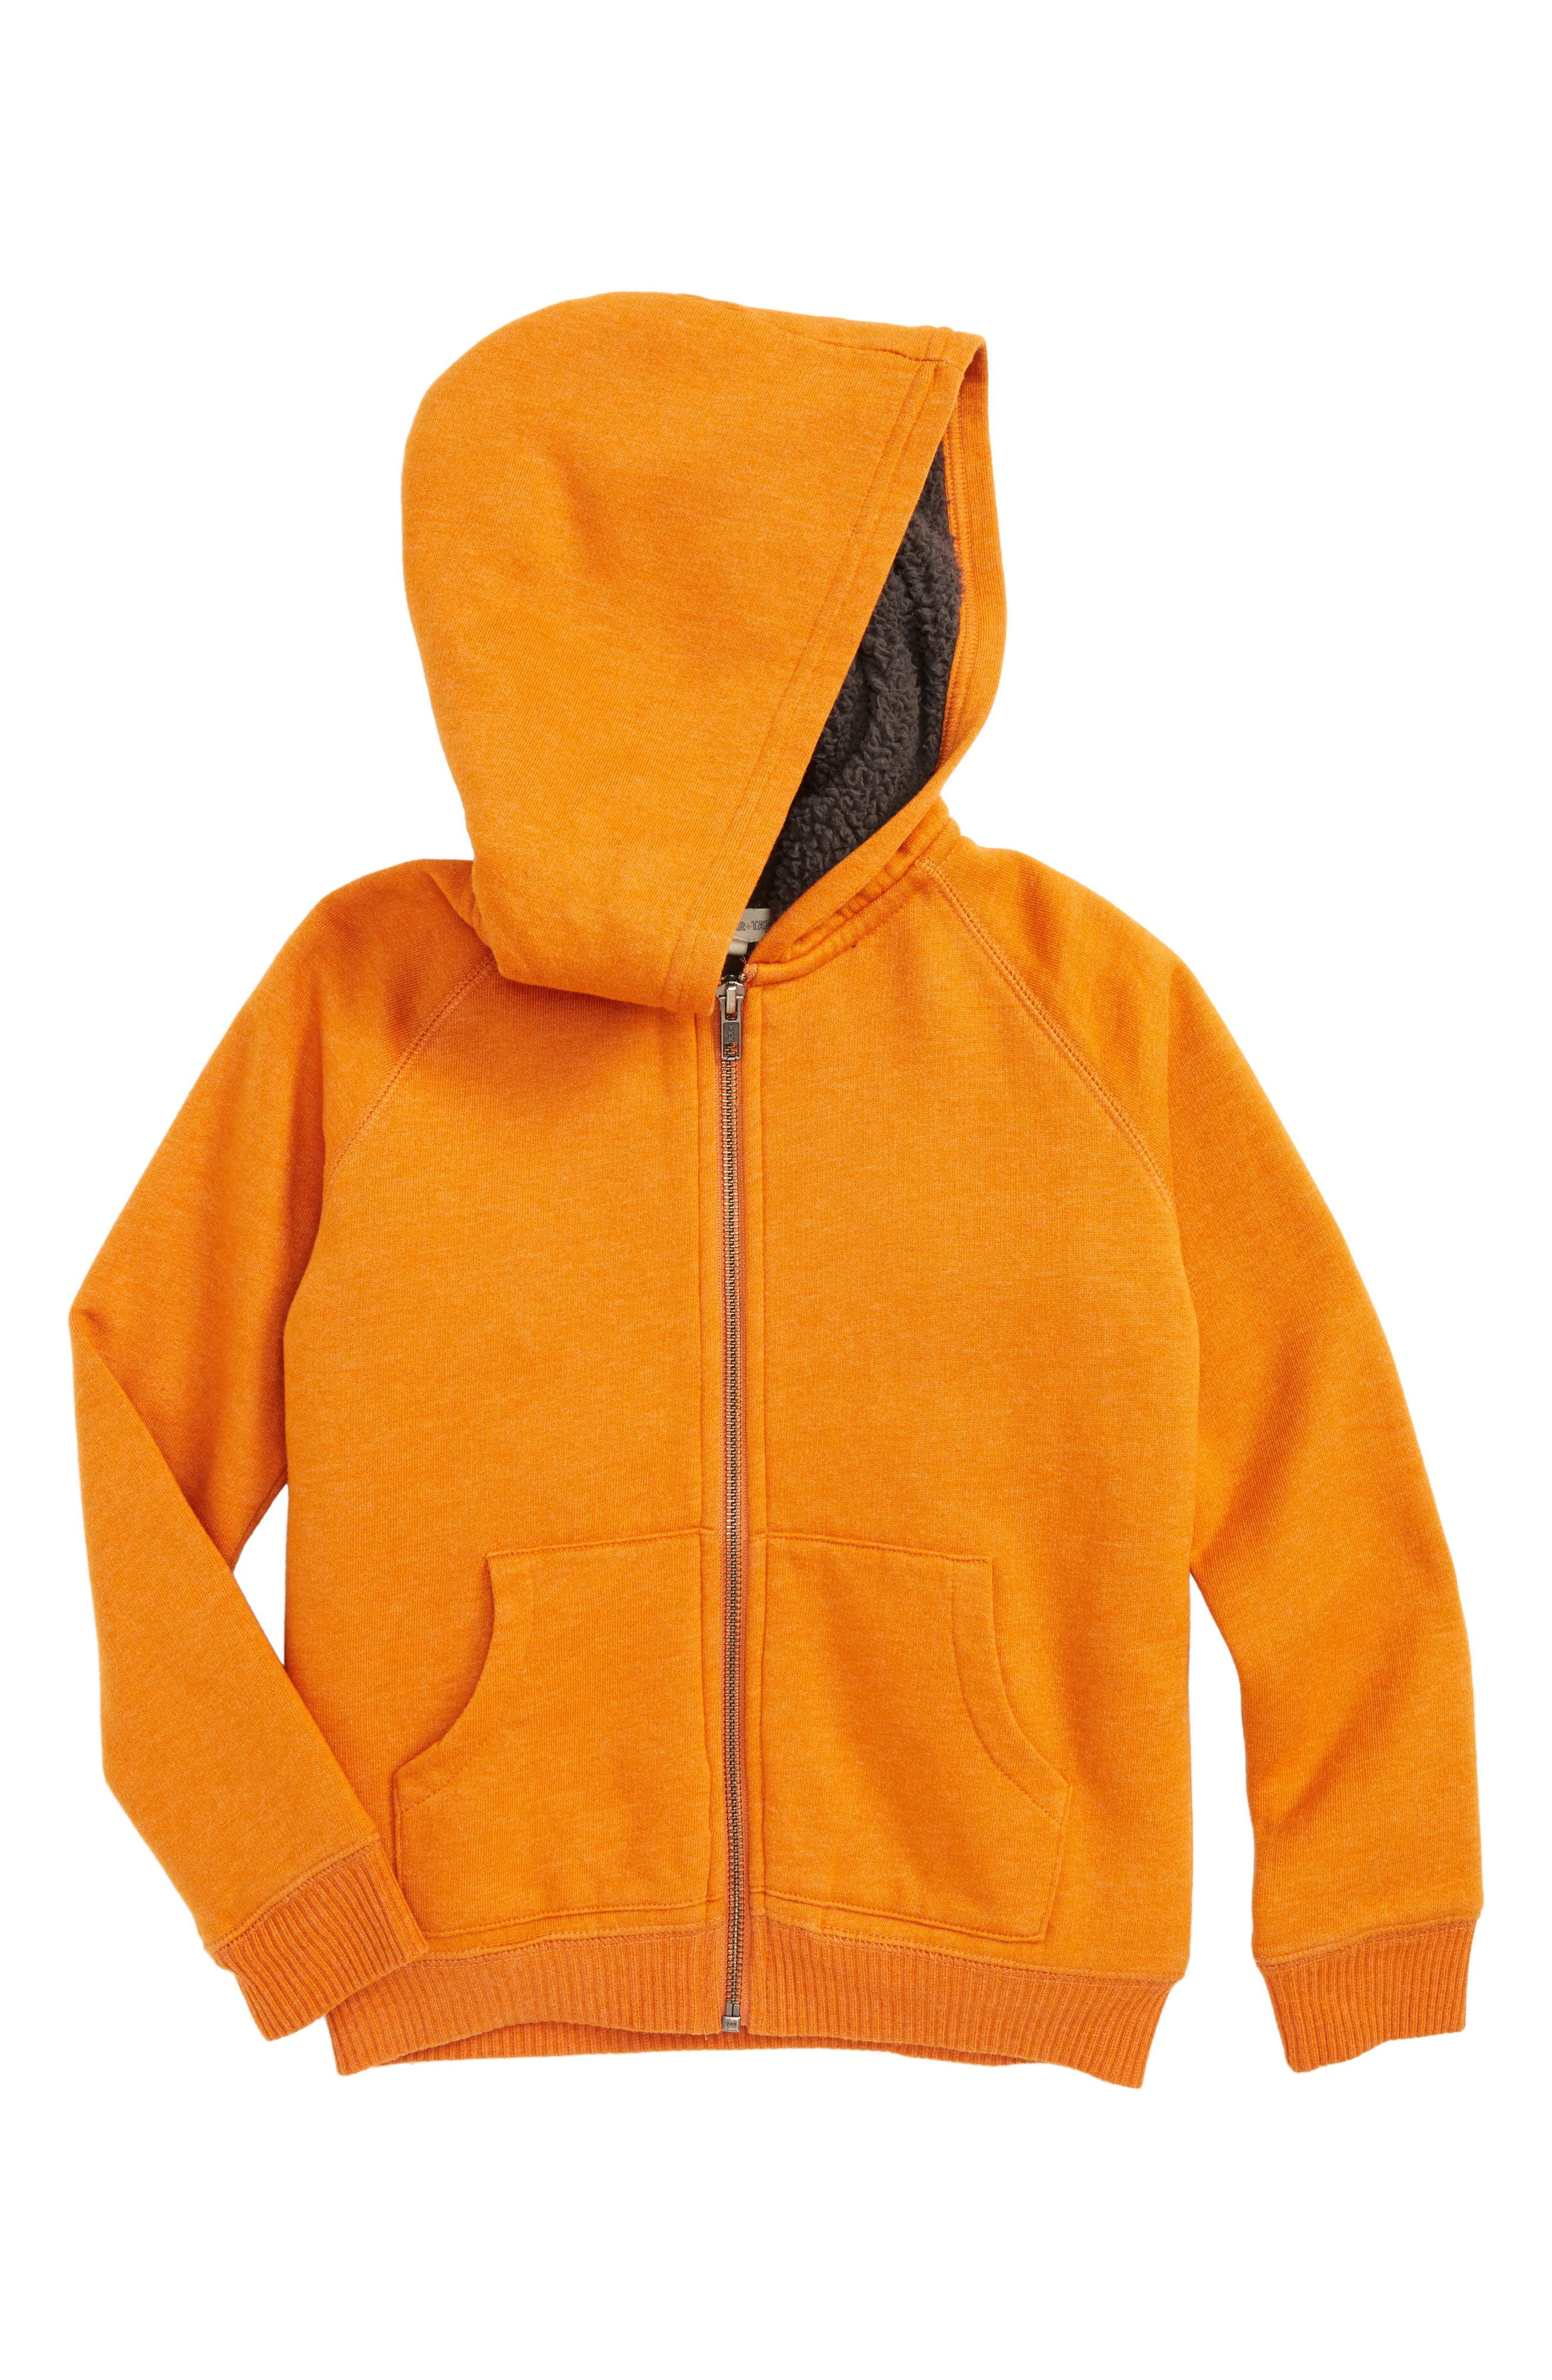 Main Image - Tucker + Tate Fleece Lined Hoodie (Toddler Boys & Little Boys)